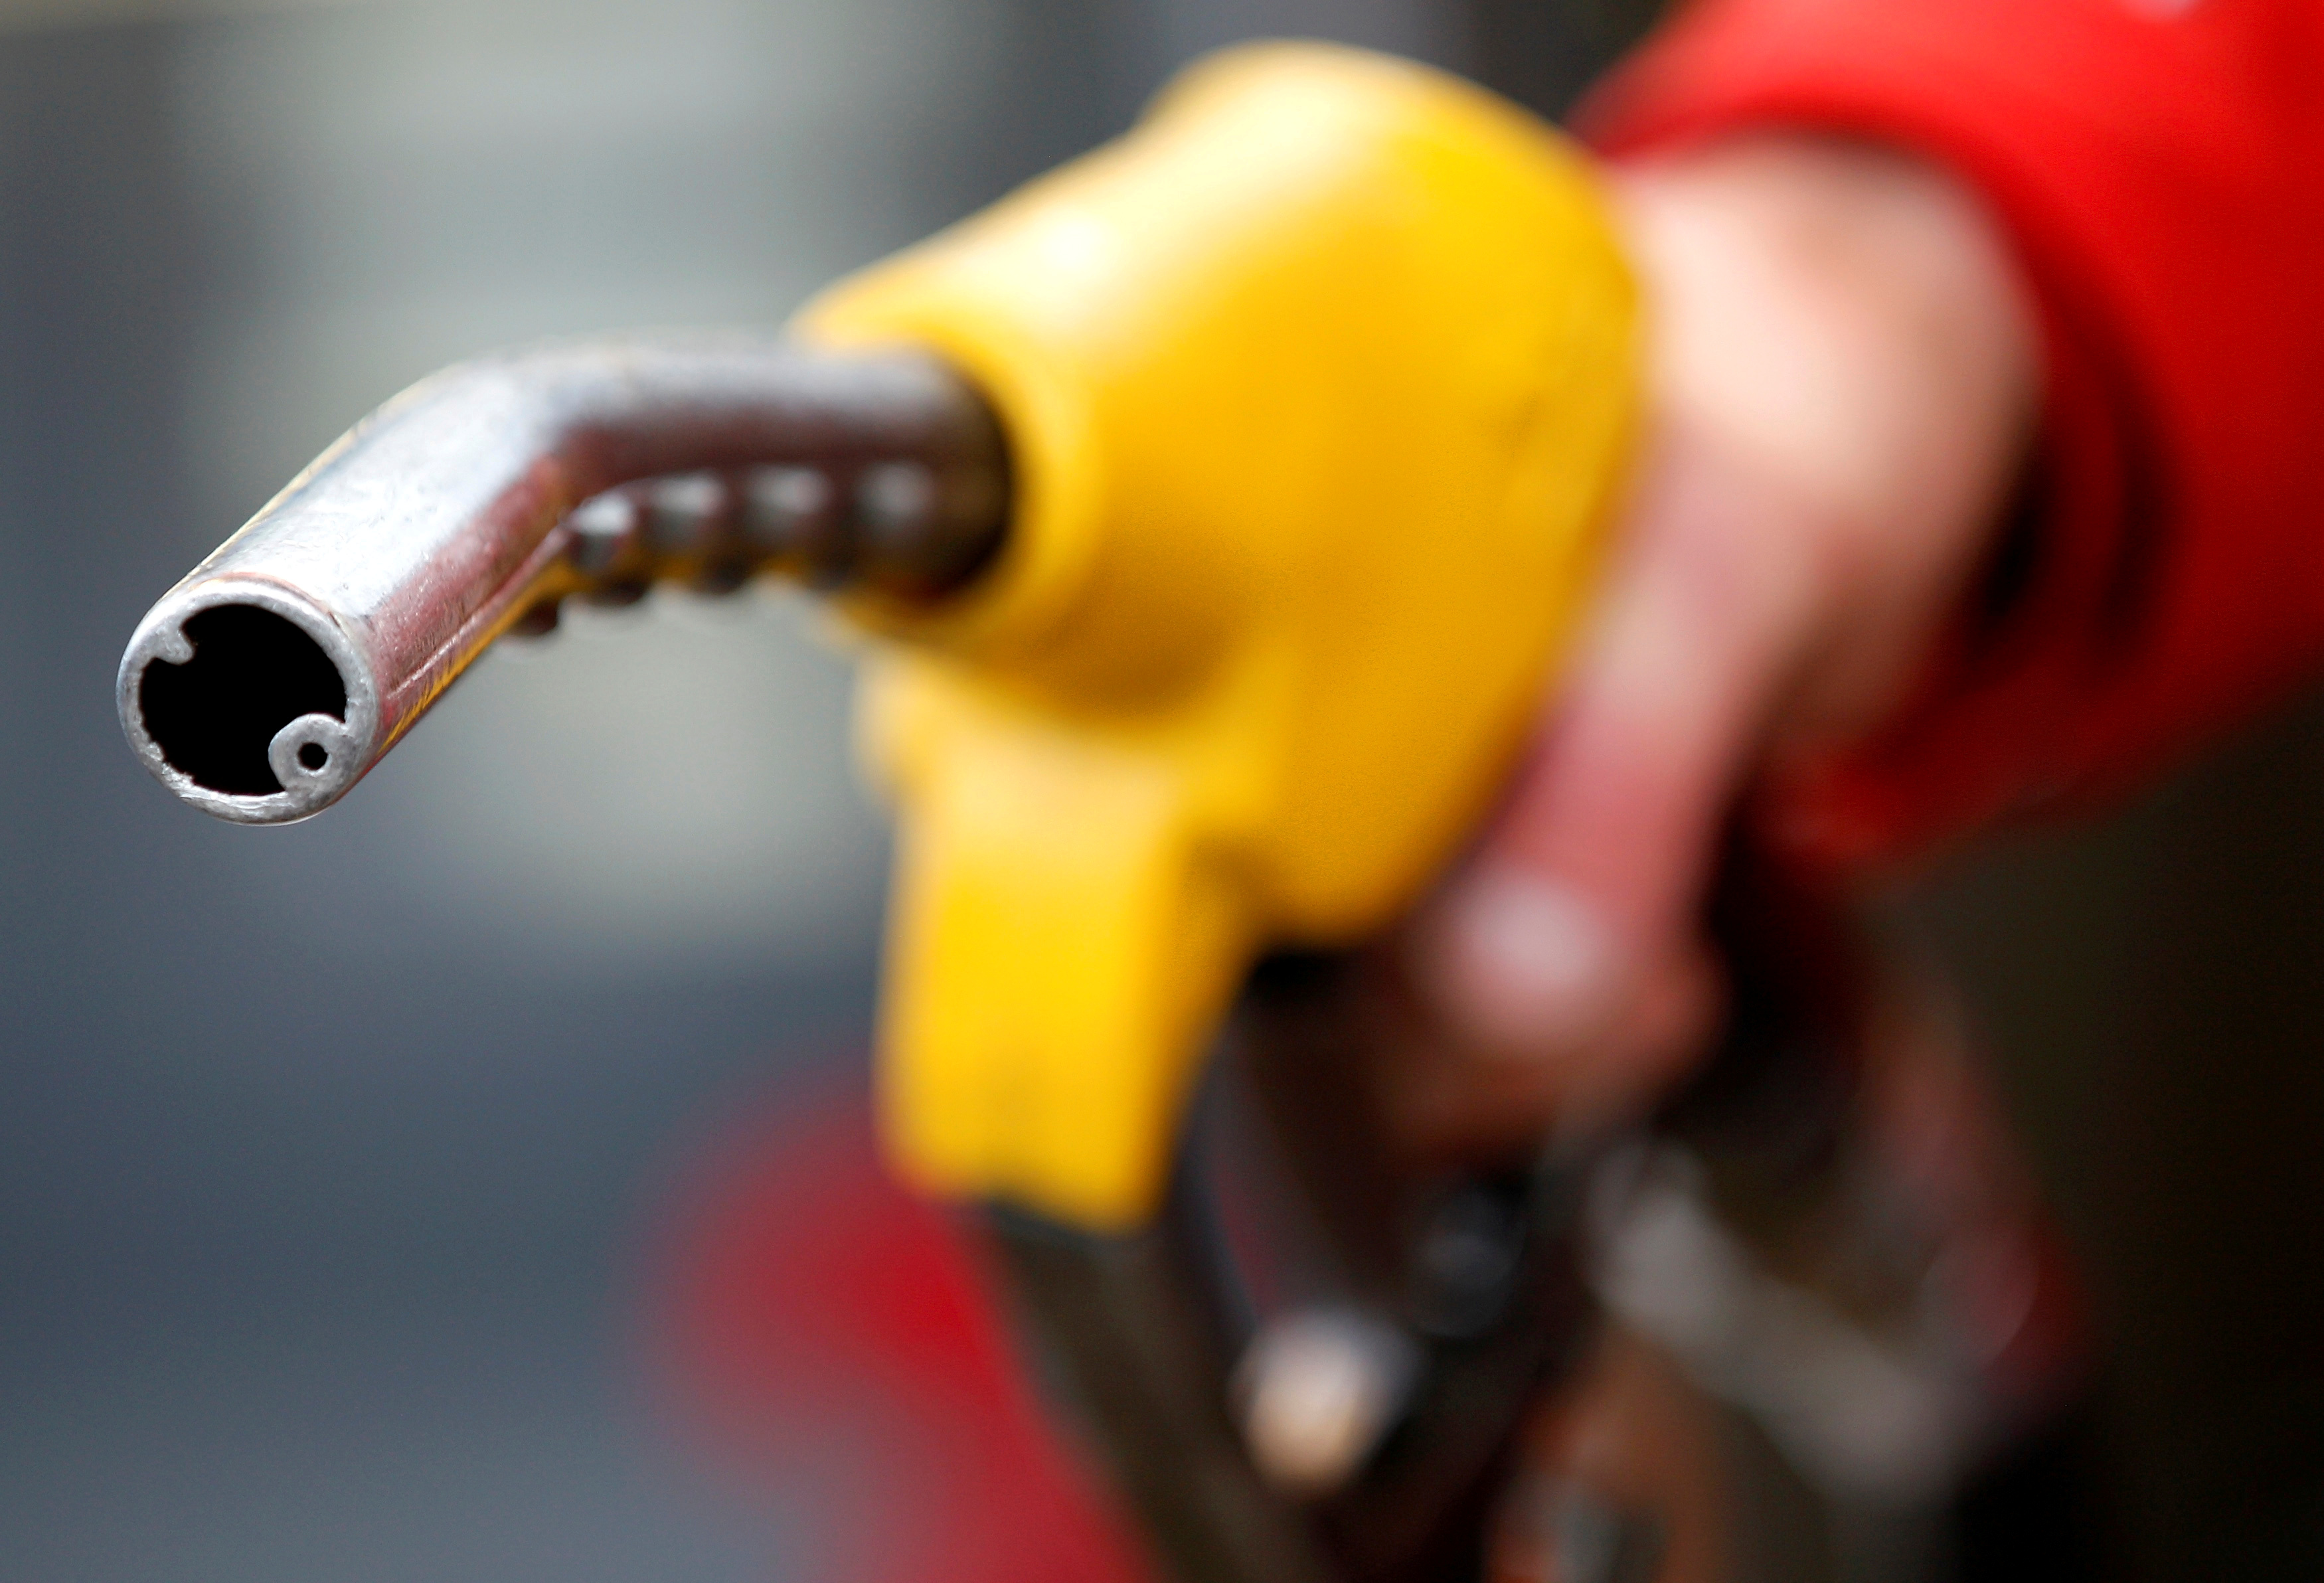 A petrol station attendant prepares to refuel a car in Rome, Italy, January 4, 2012. REUTERS/Max Rossi/File Photo